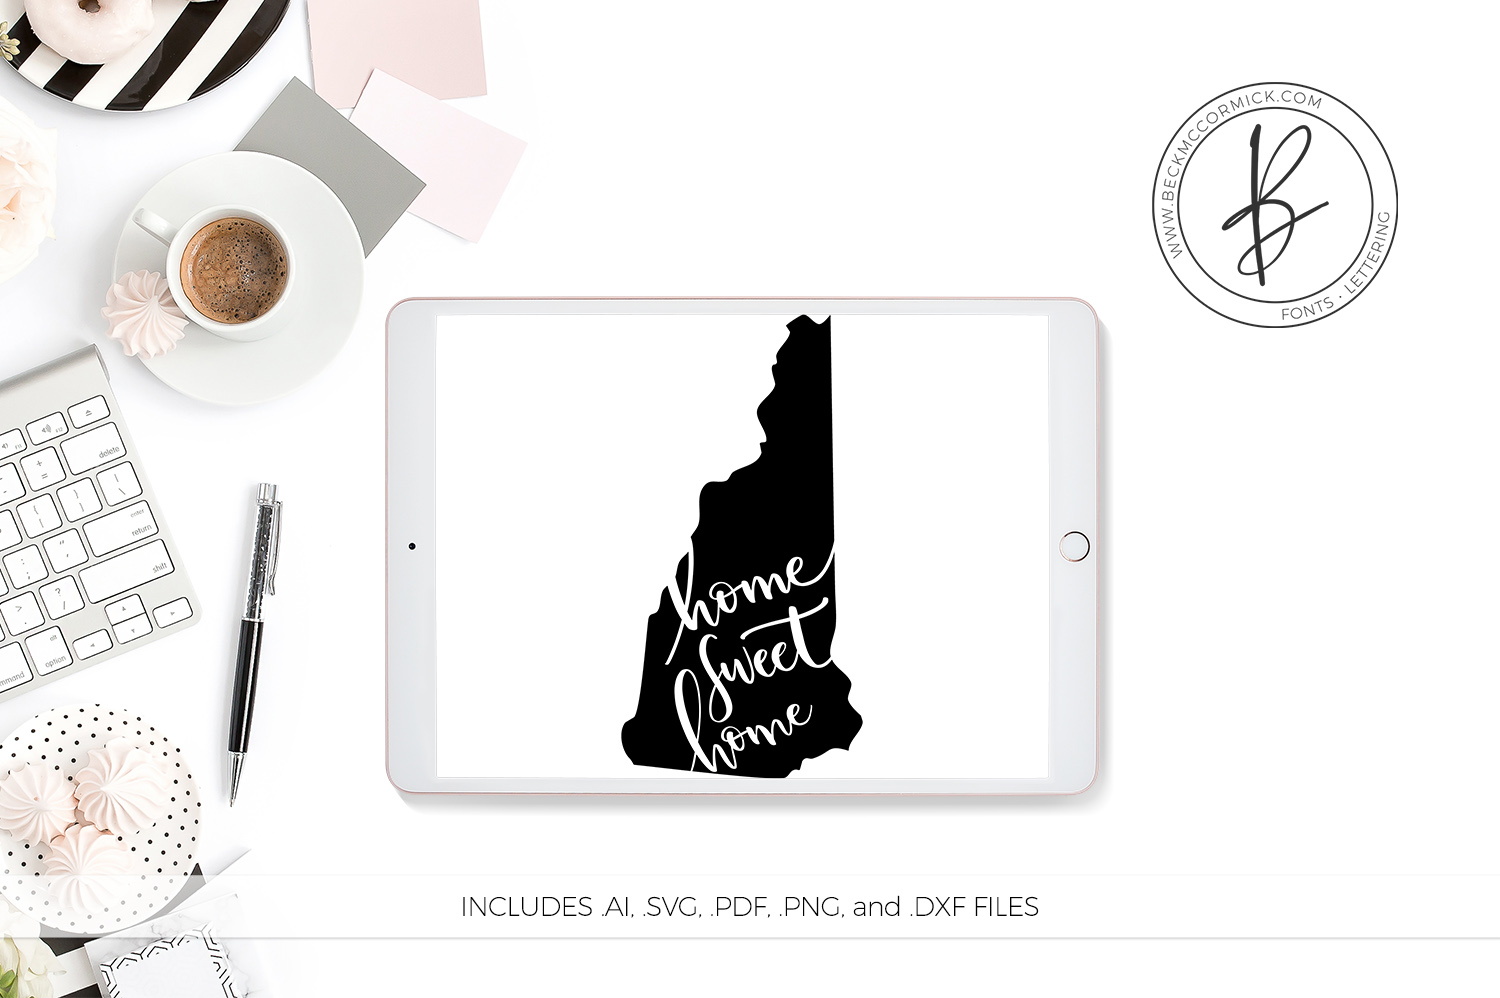 Download Free New Hampshire Home Sweet Home Graphic By Beckmccormick for Cricut Explore, Silhouette and other cutting machines.